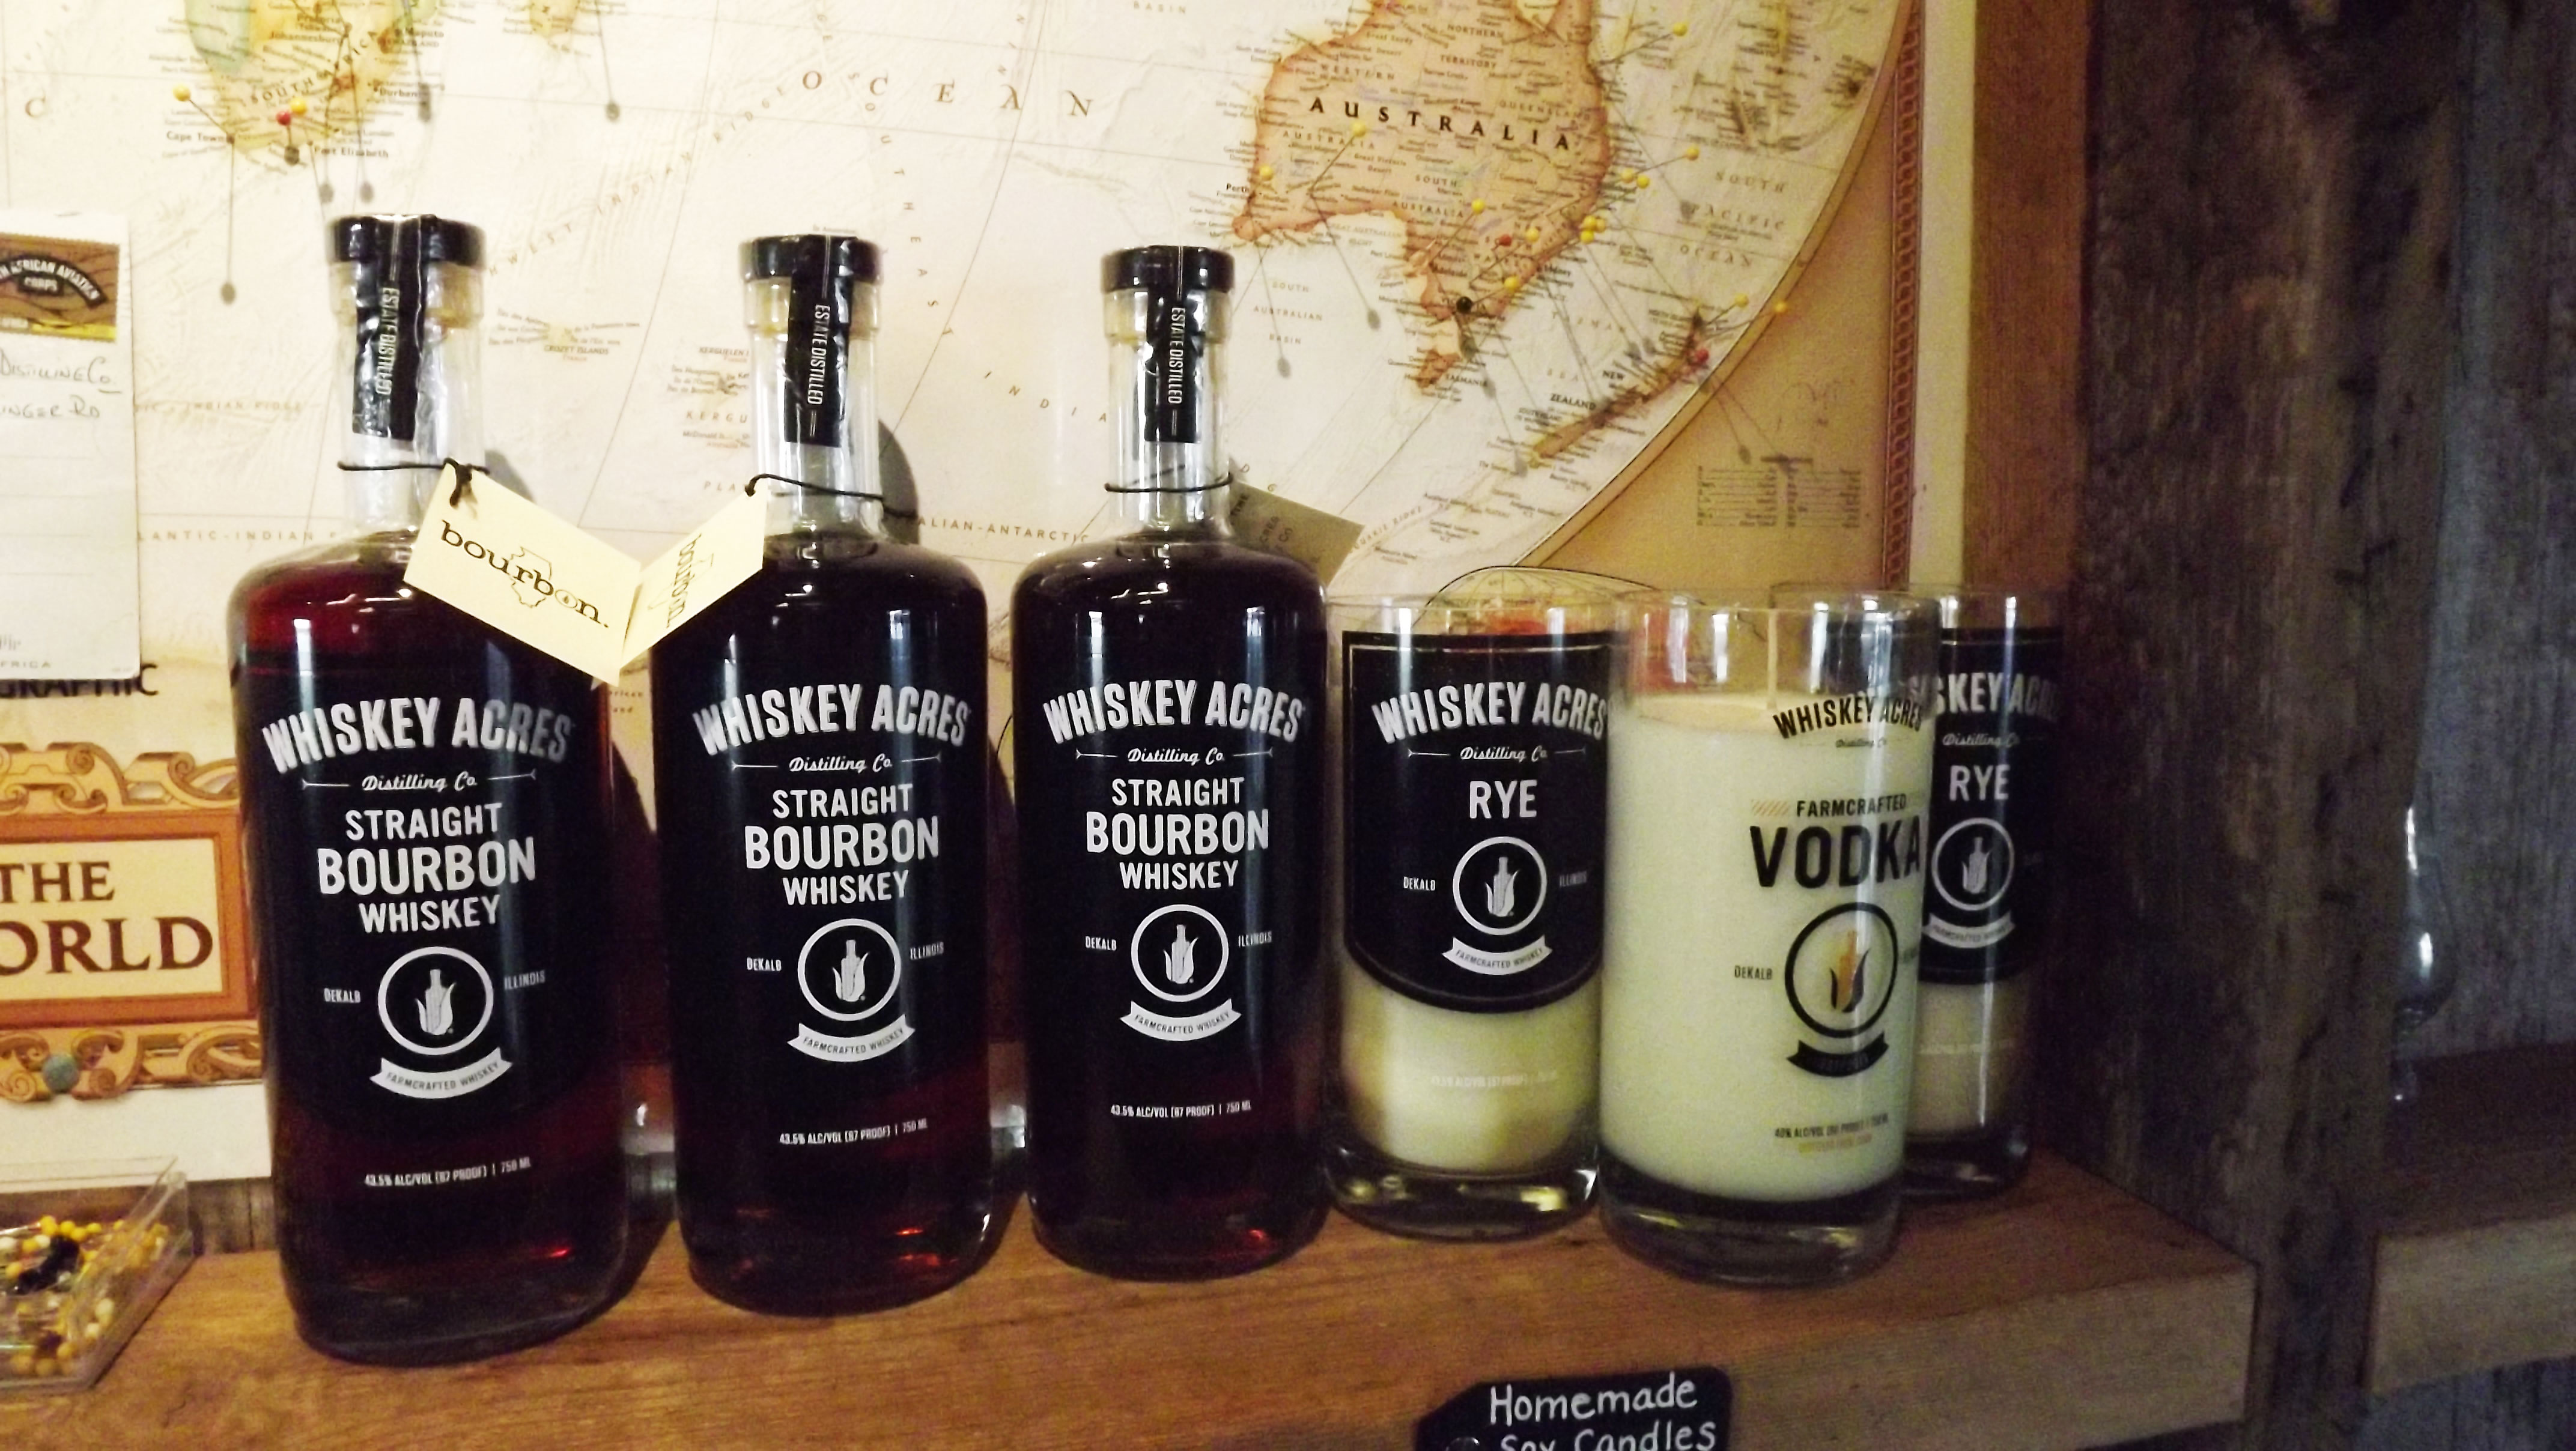 whiskey acres products